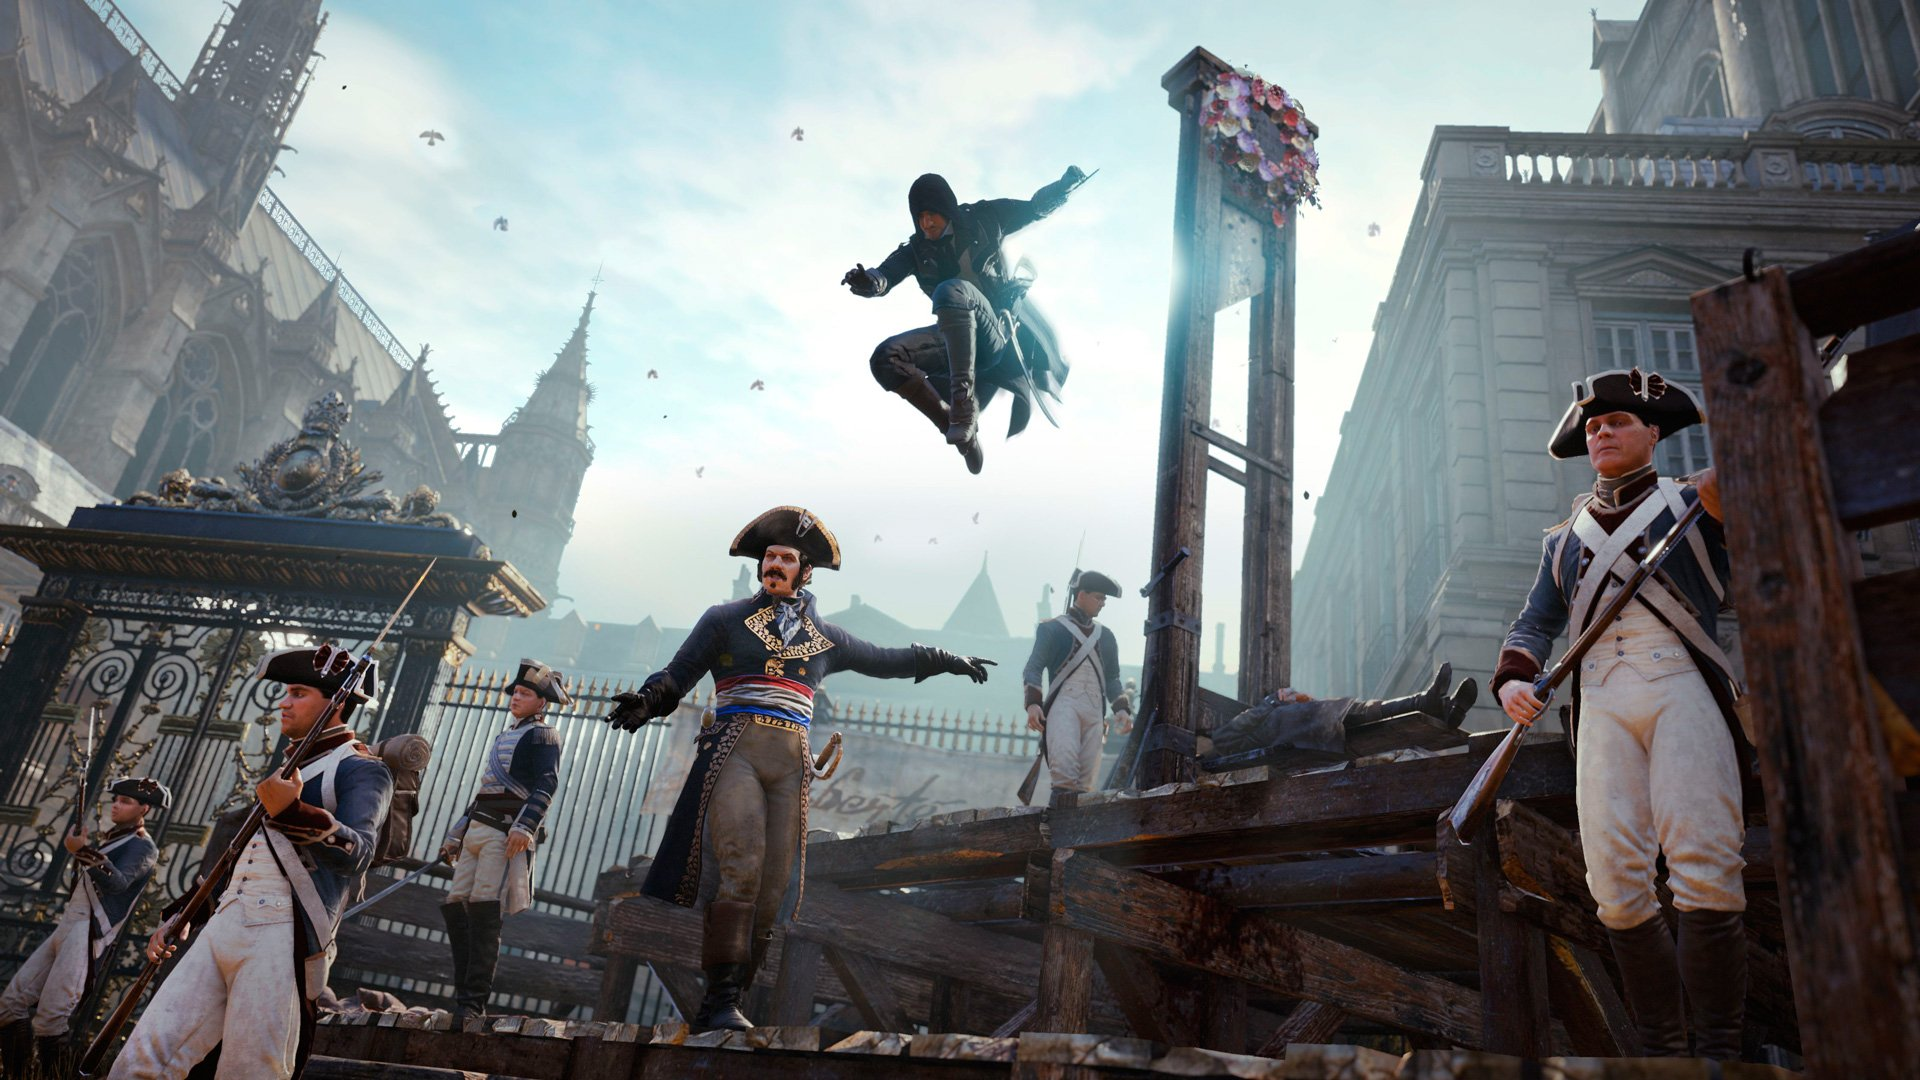 Скриншоты Assassin's Creed: Unity в 4K - Изображение 6